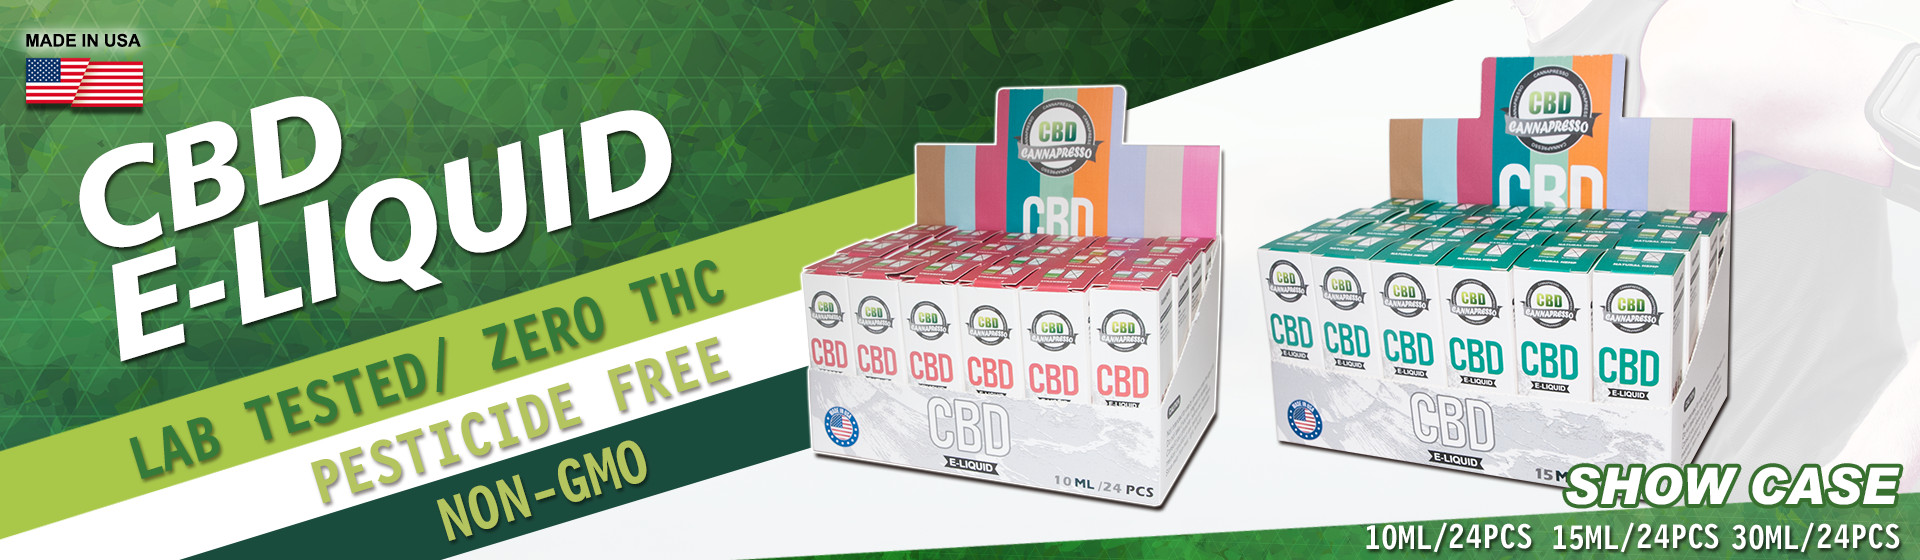 CBD eliquid with 24pcs package